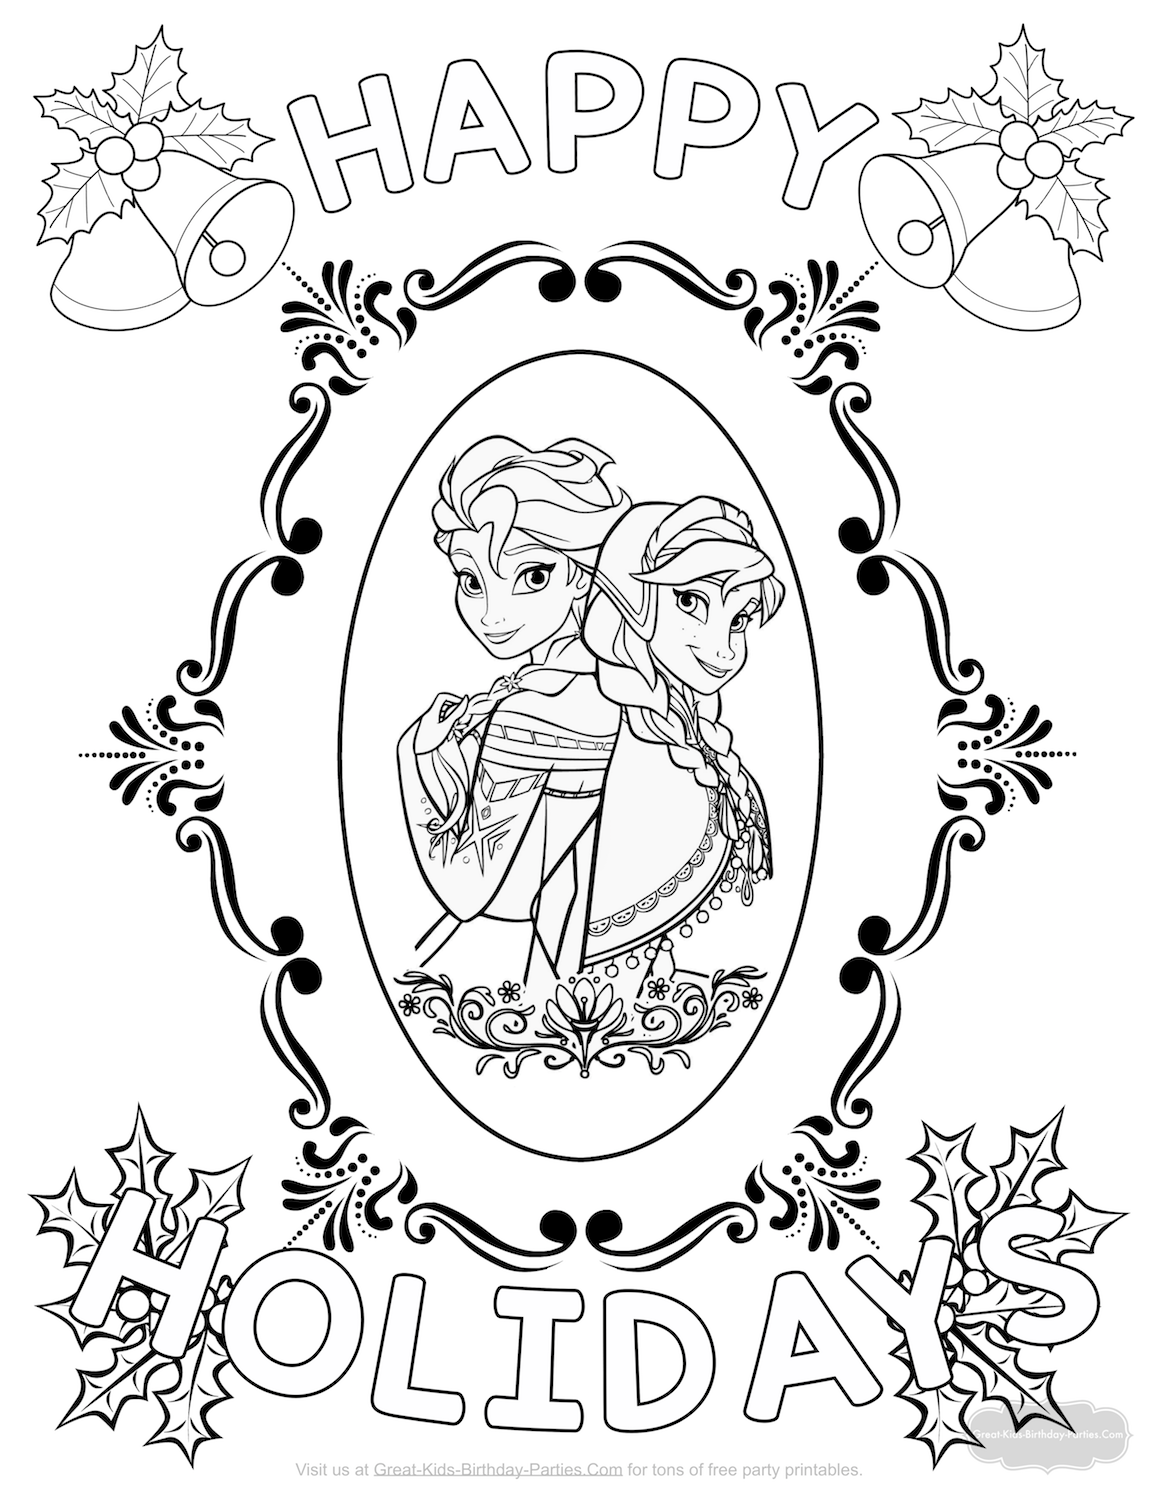 join elsa and anna in celebrating this holiday season with our new coloring page to download our free printable simply right click on image and save to